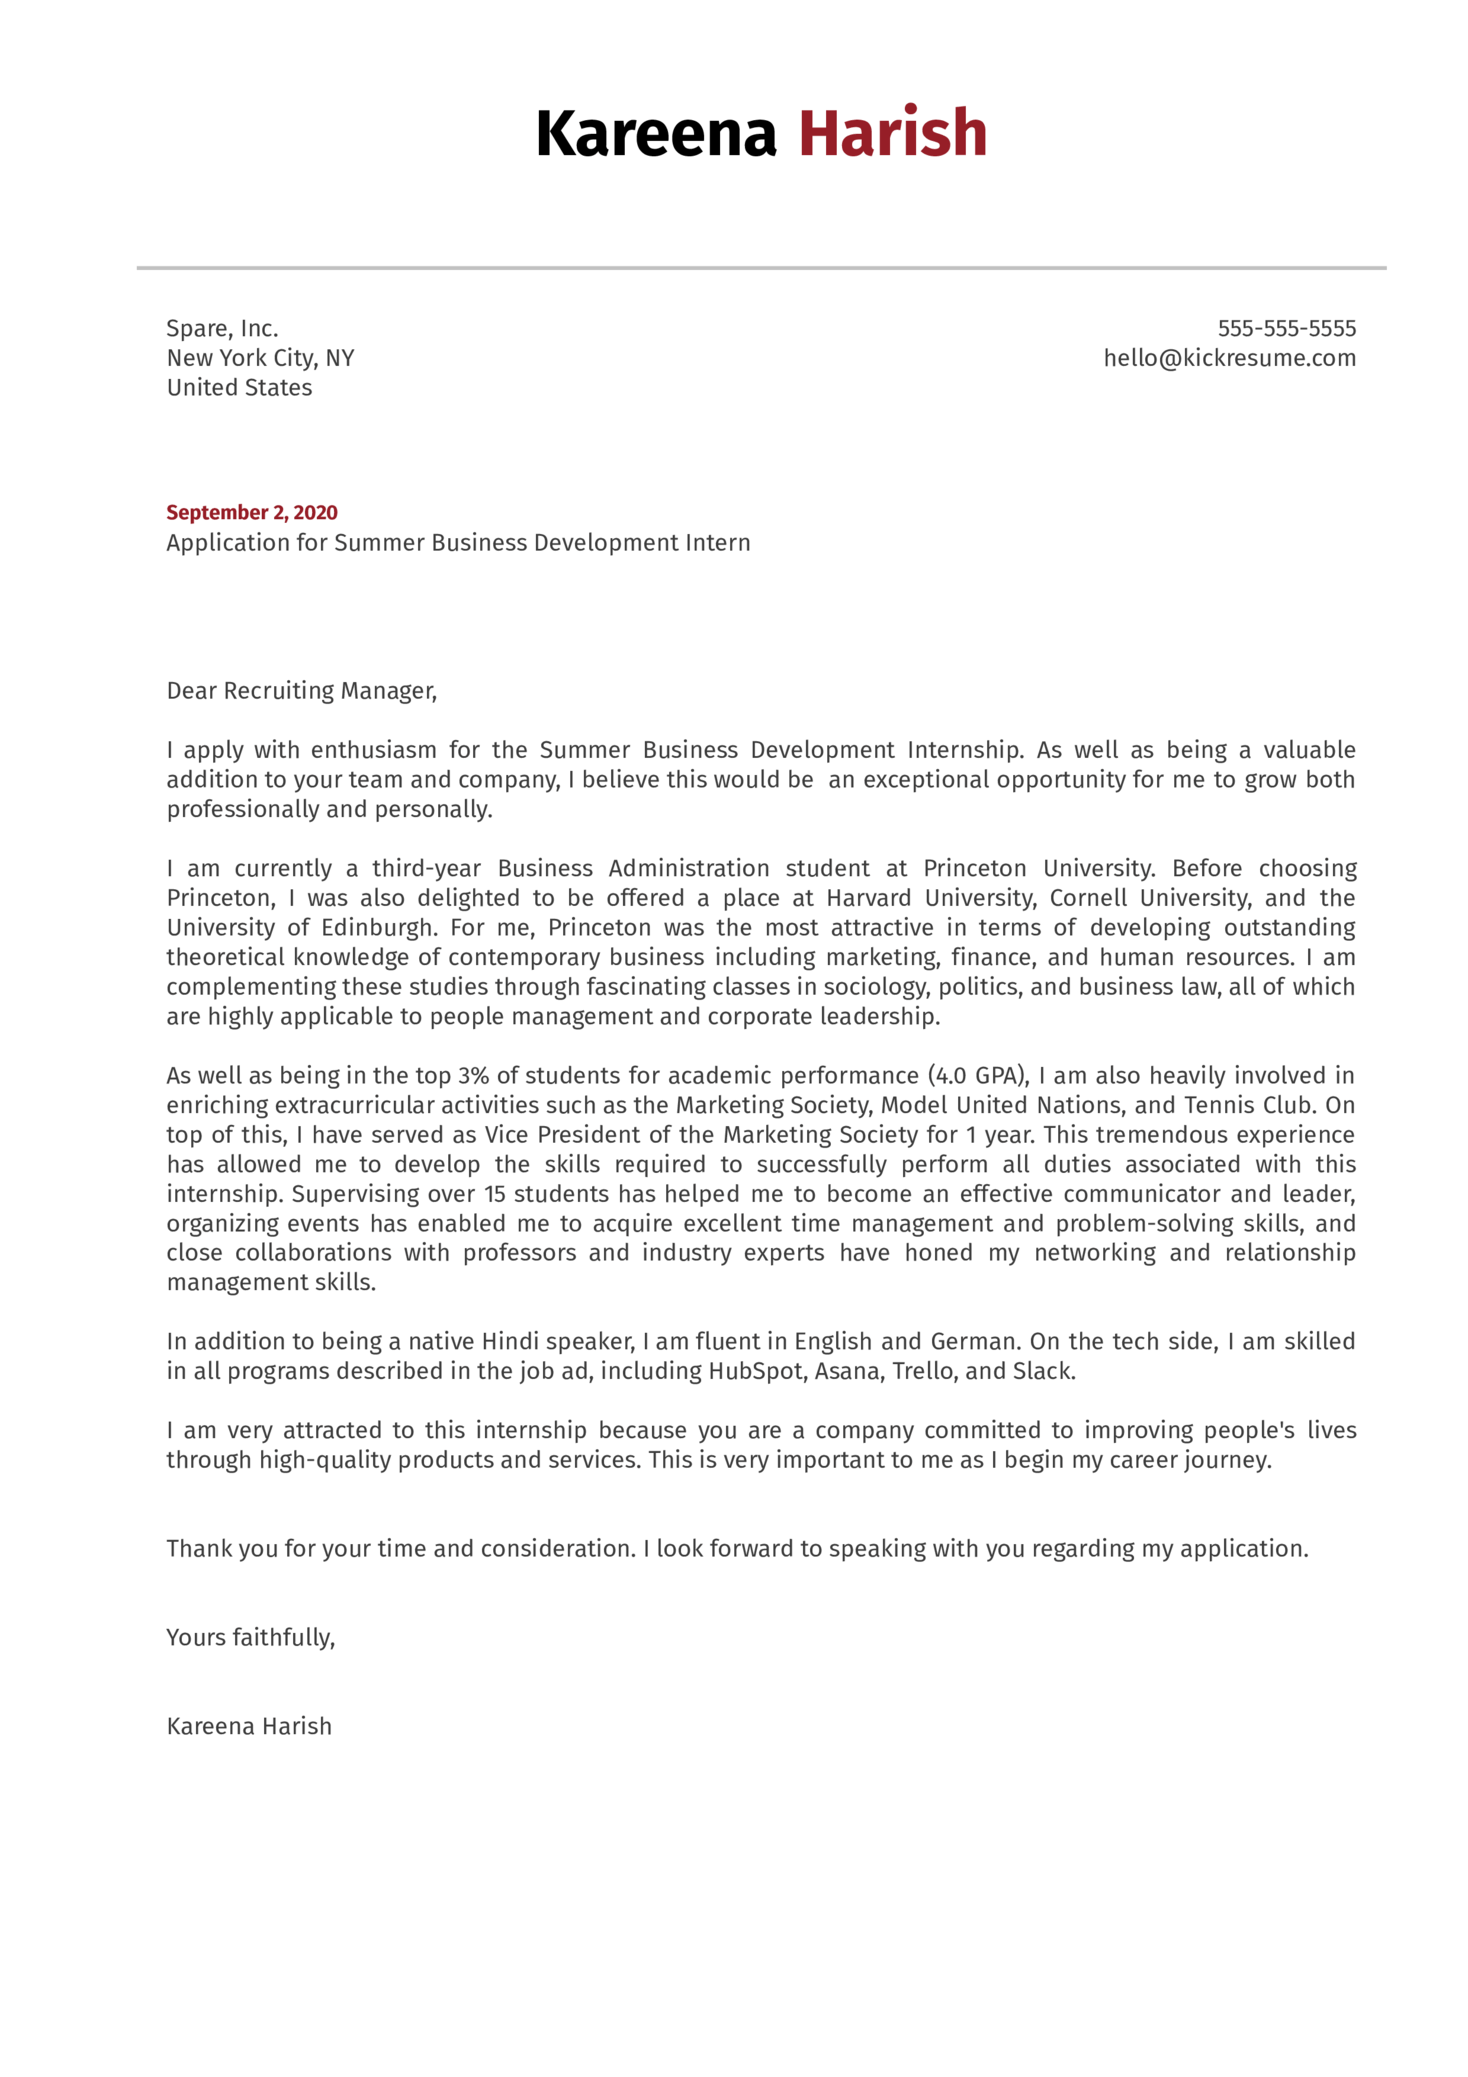 Business Development Intern Cover Letter Example